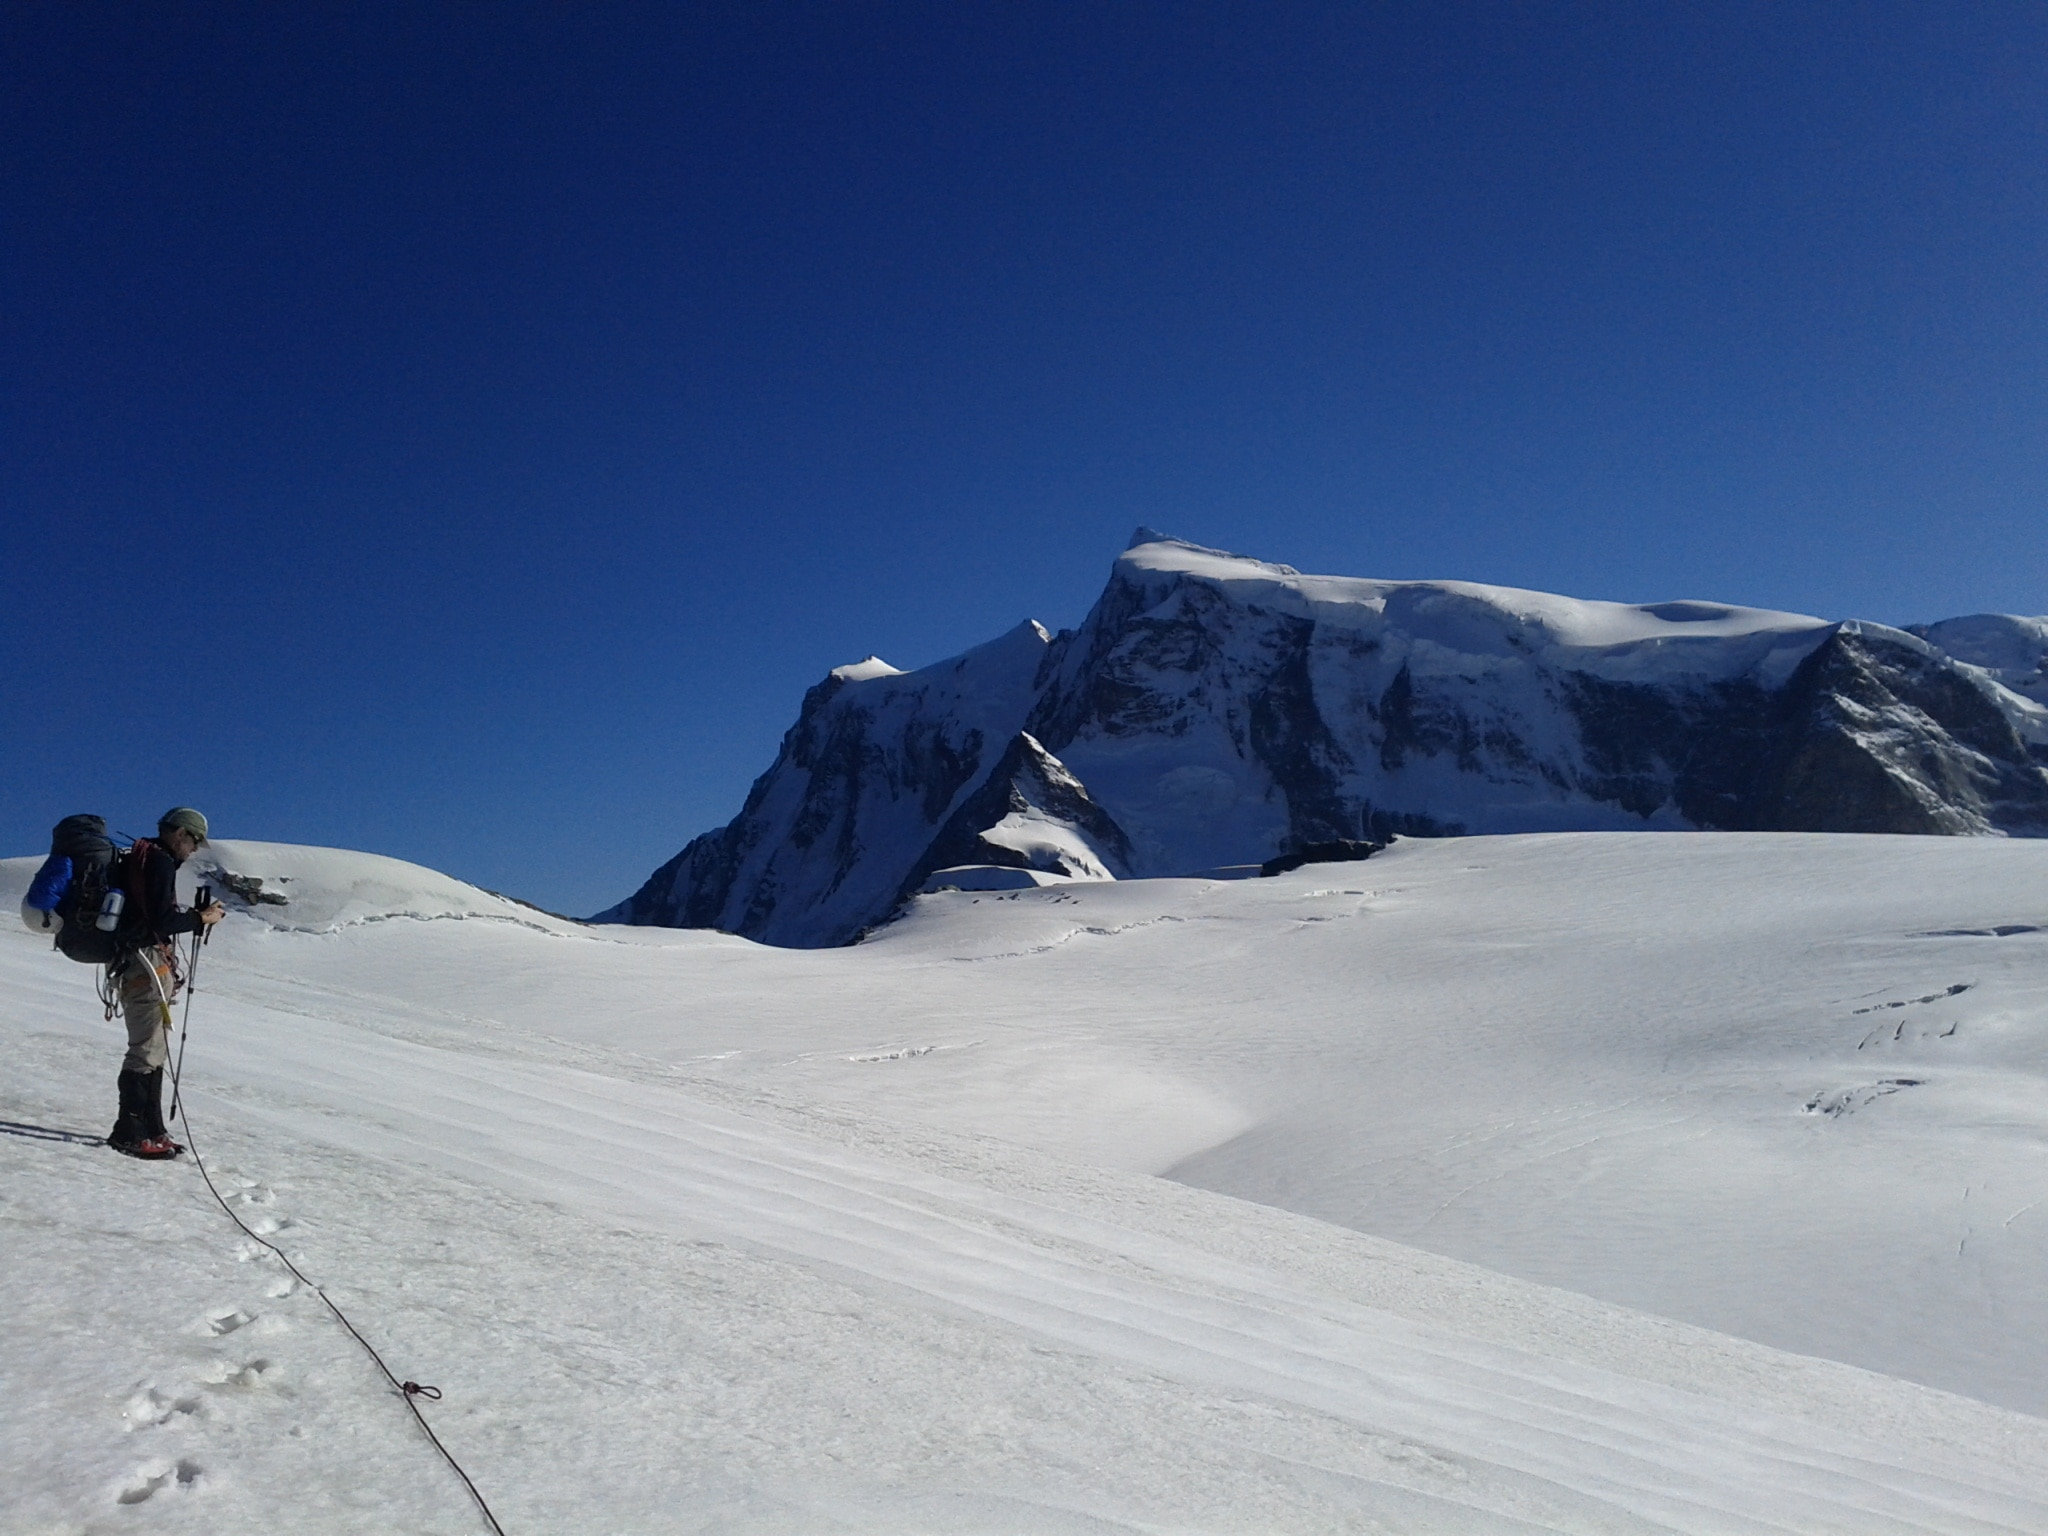 Here is where we decided our intended route on the border leading to Nordend on Monte Rosa looked like too hard a climb.